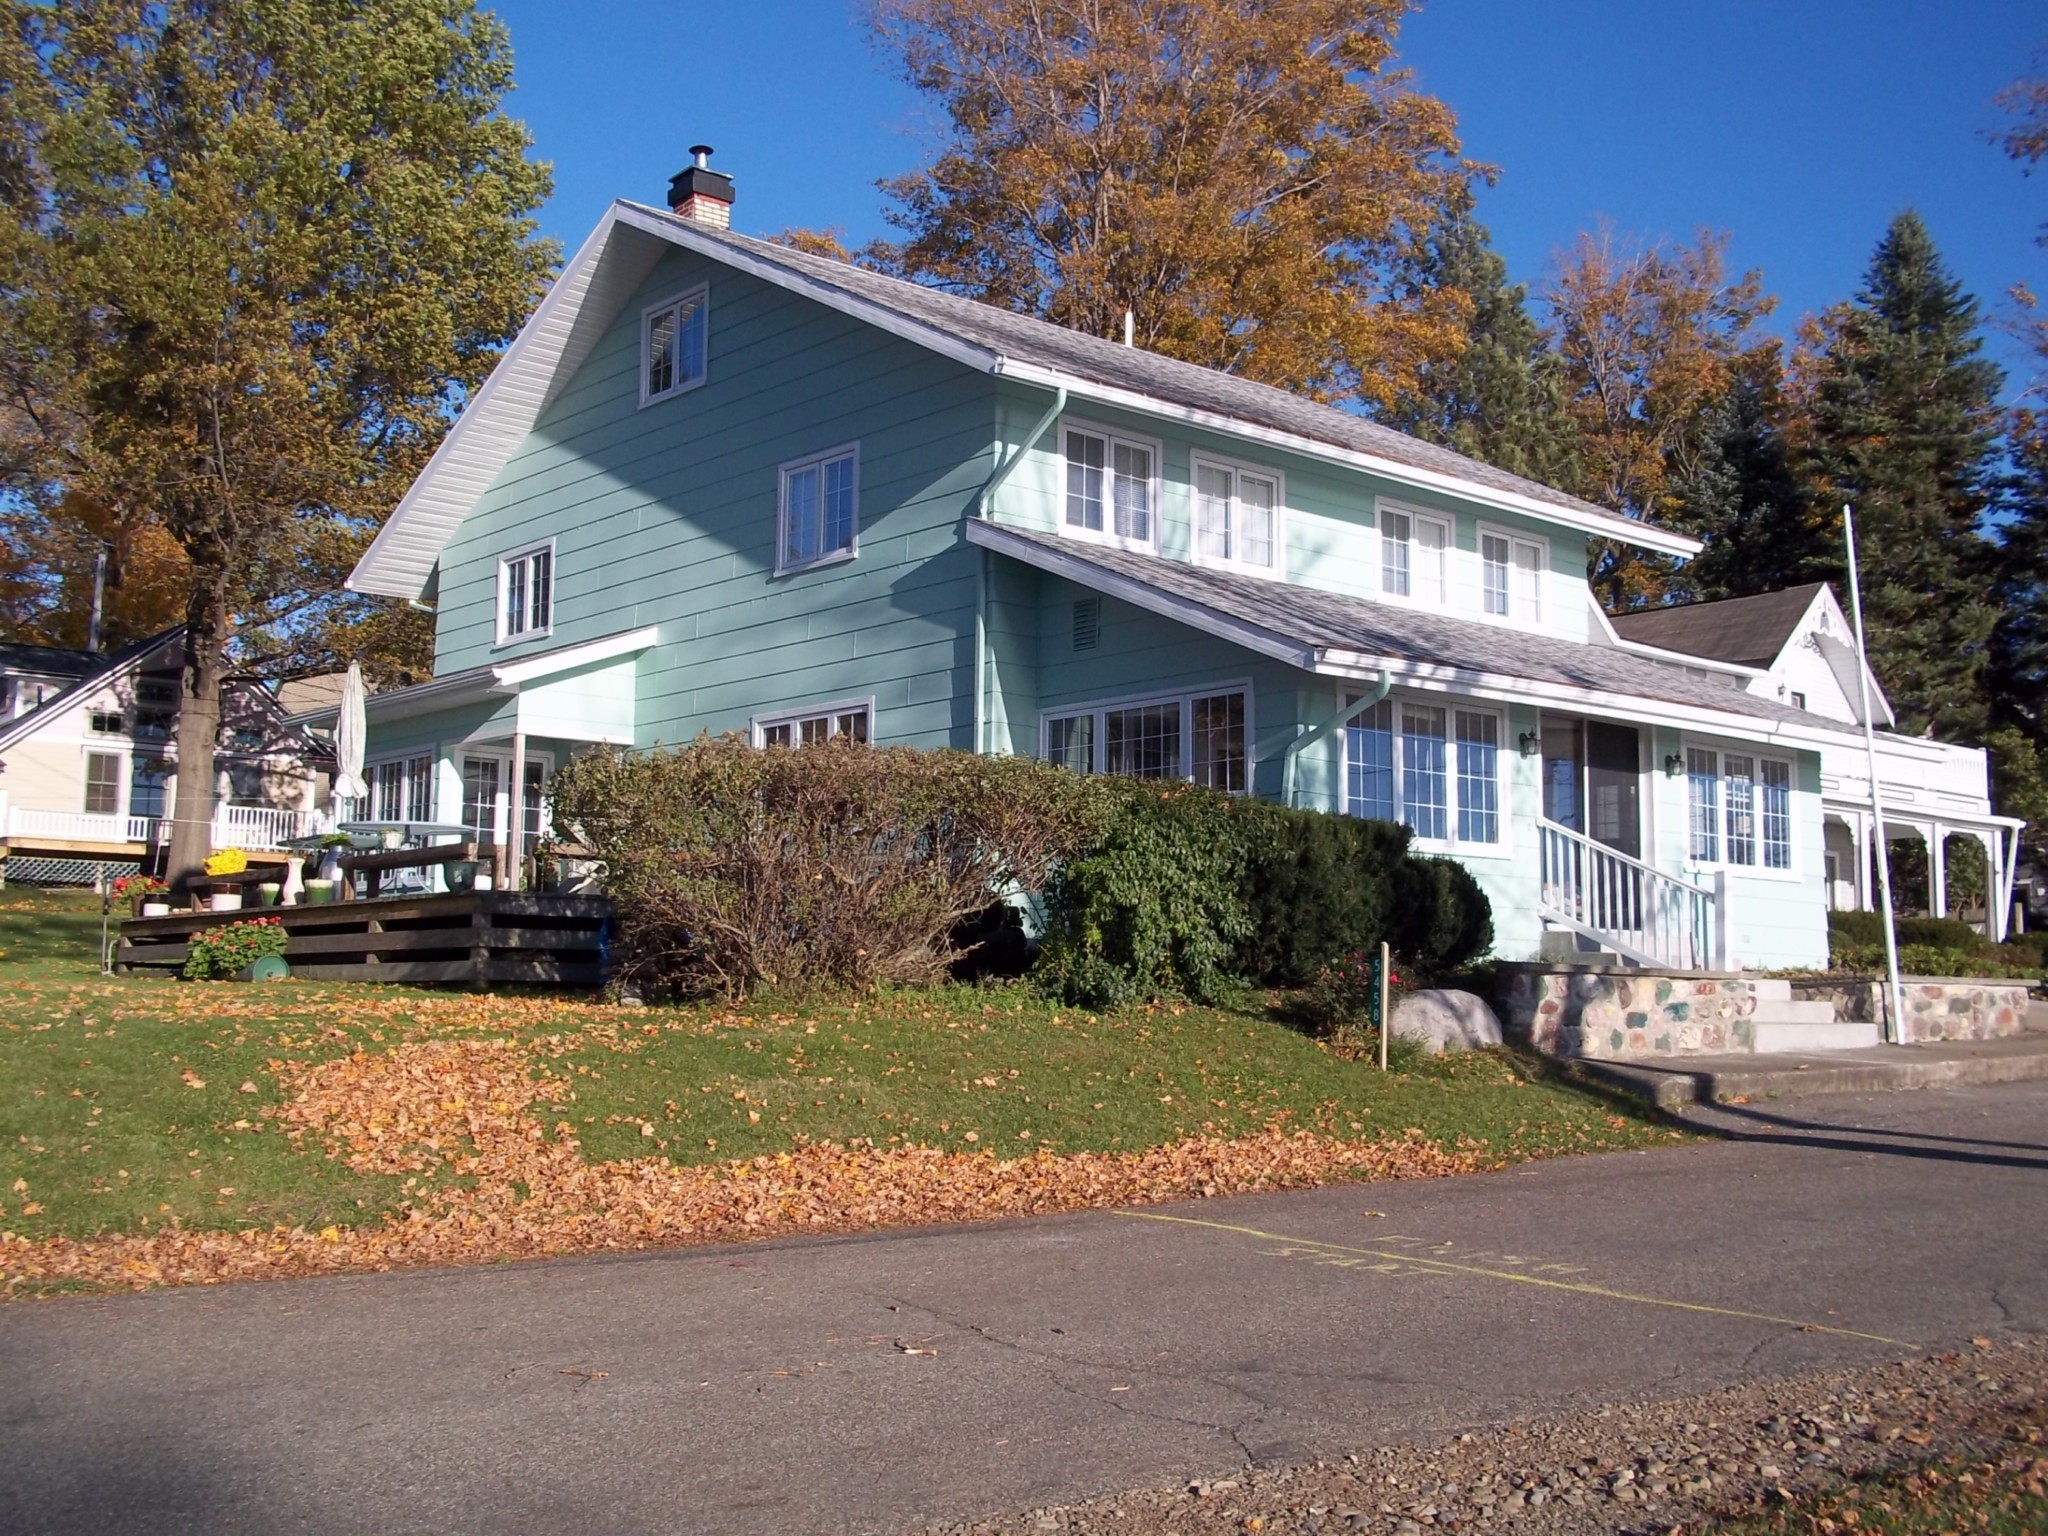 Vacation Home Painting - CertaPro Painters of Chagrin Falls, OH